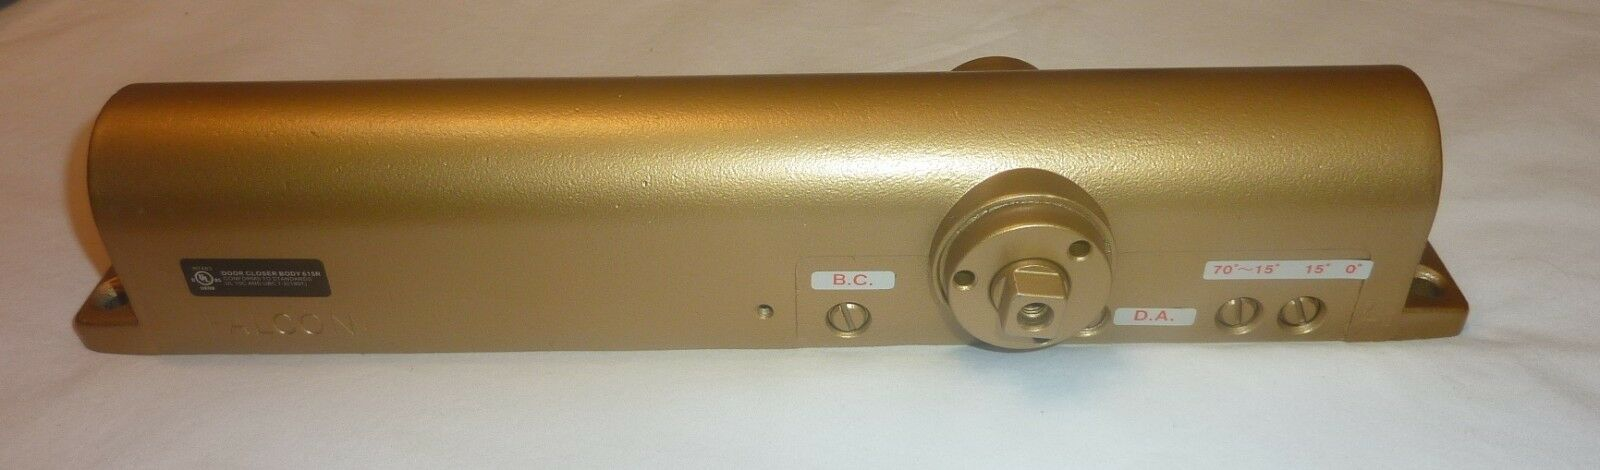 Ingersoll Rand Falcon SC81 Door Closer HD 43453 Full Cover  Delayed Action BRASS